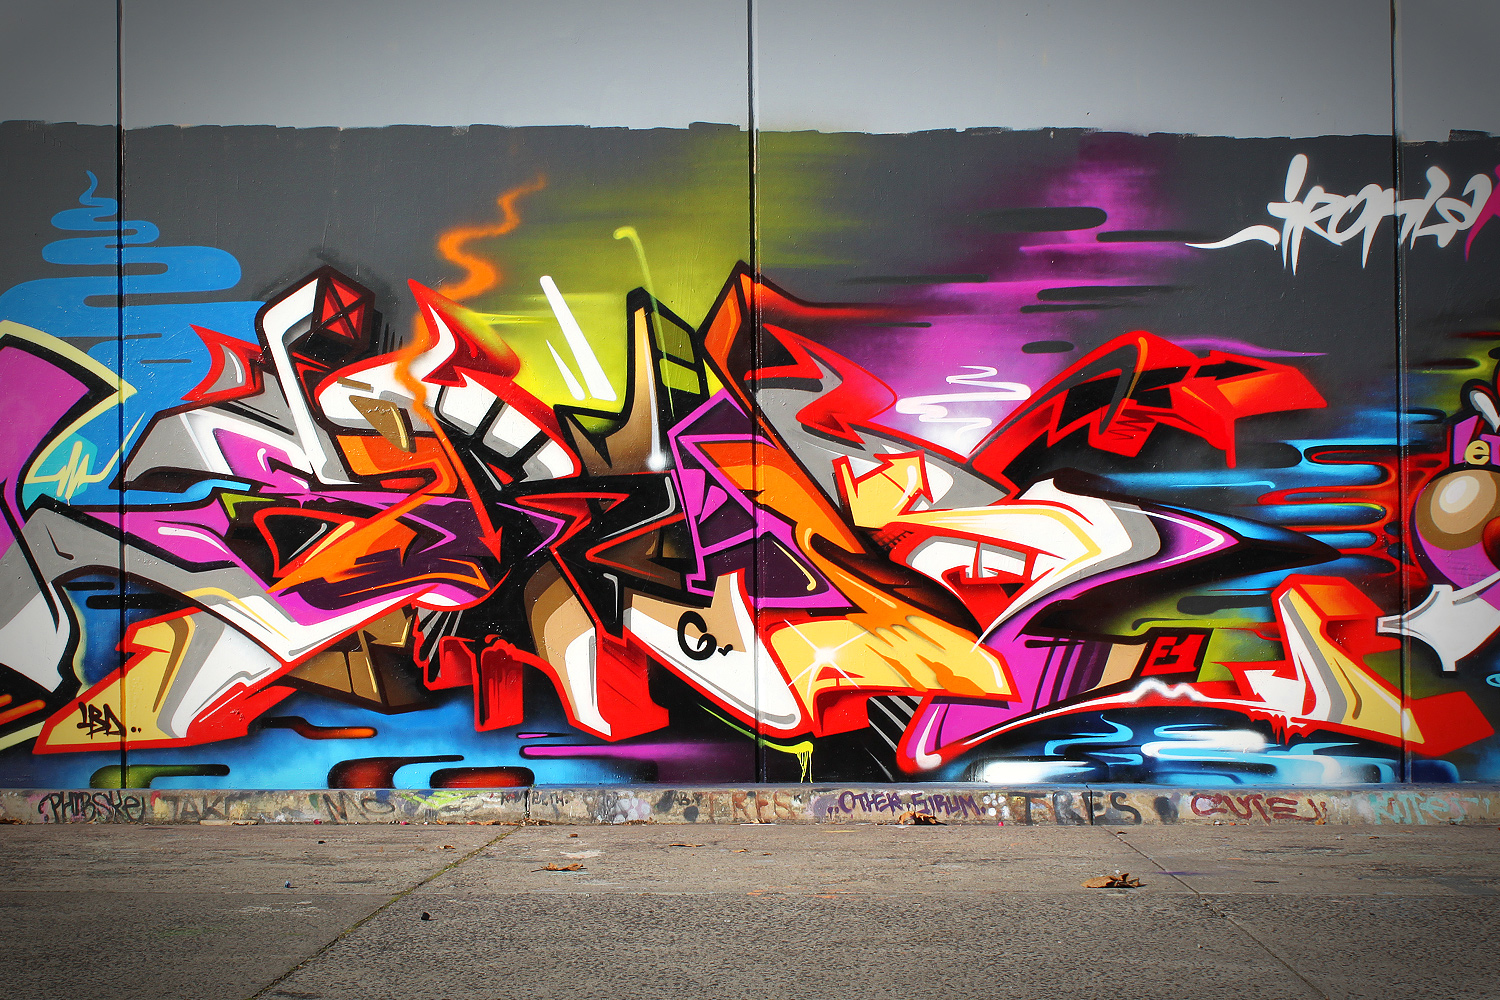 sirum_graffiti-wall-art_66